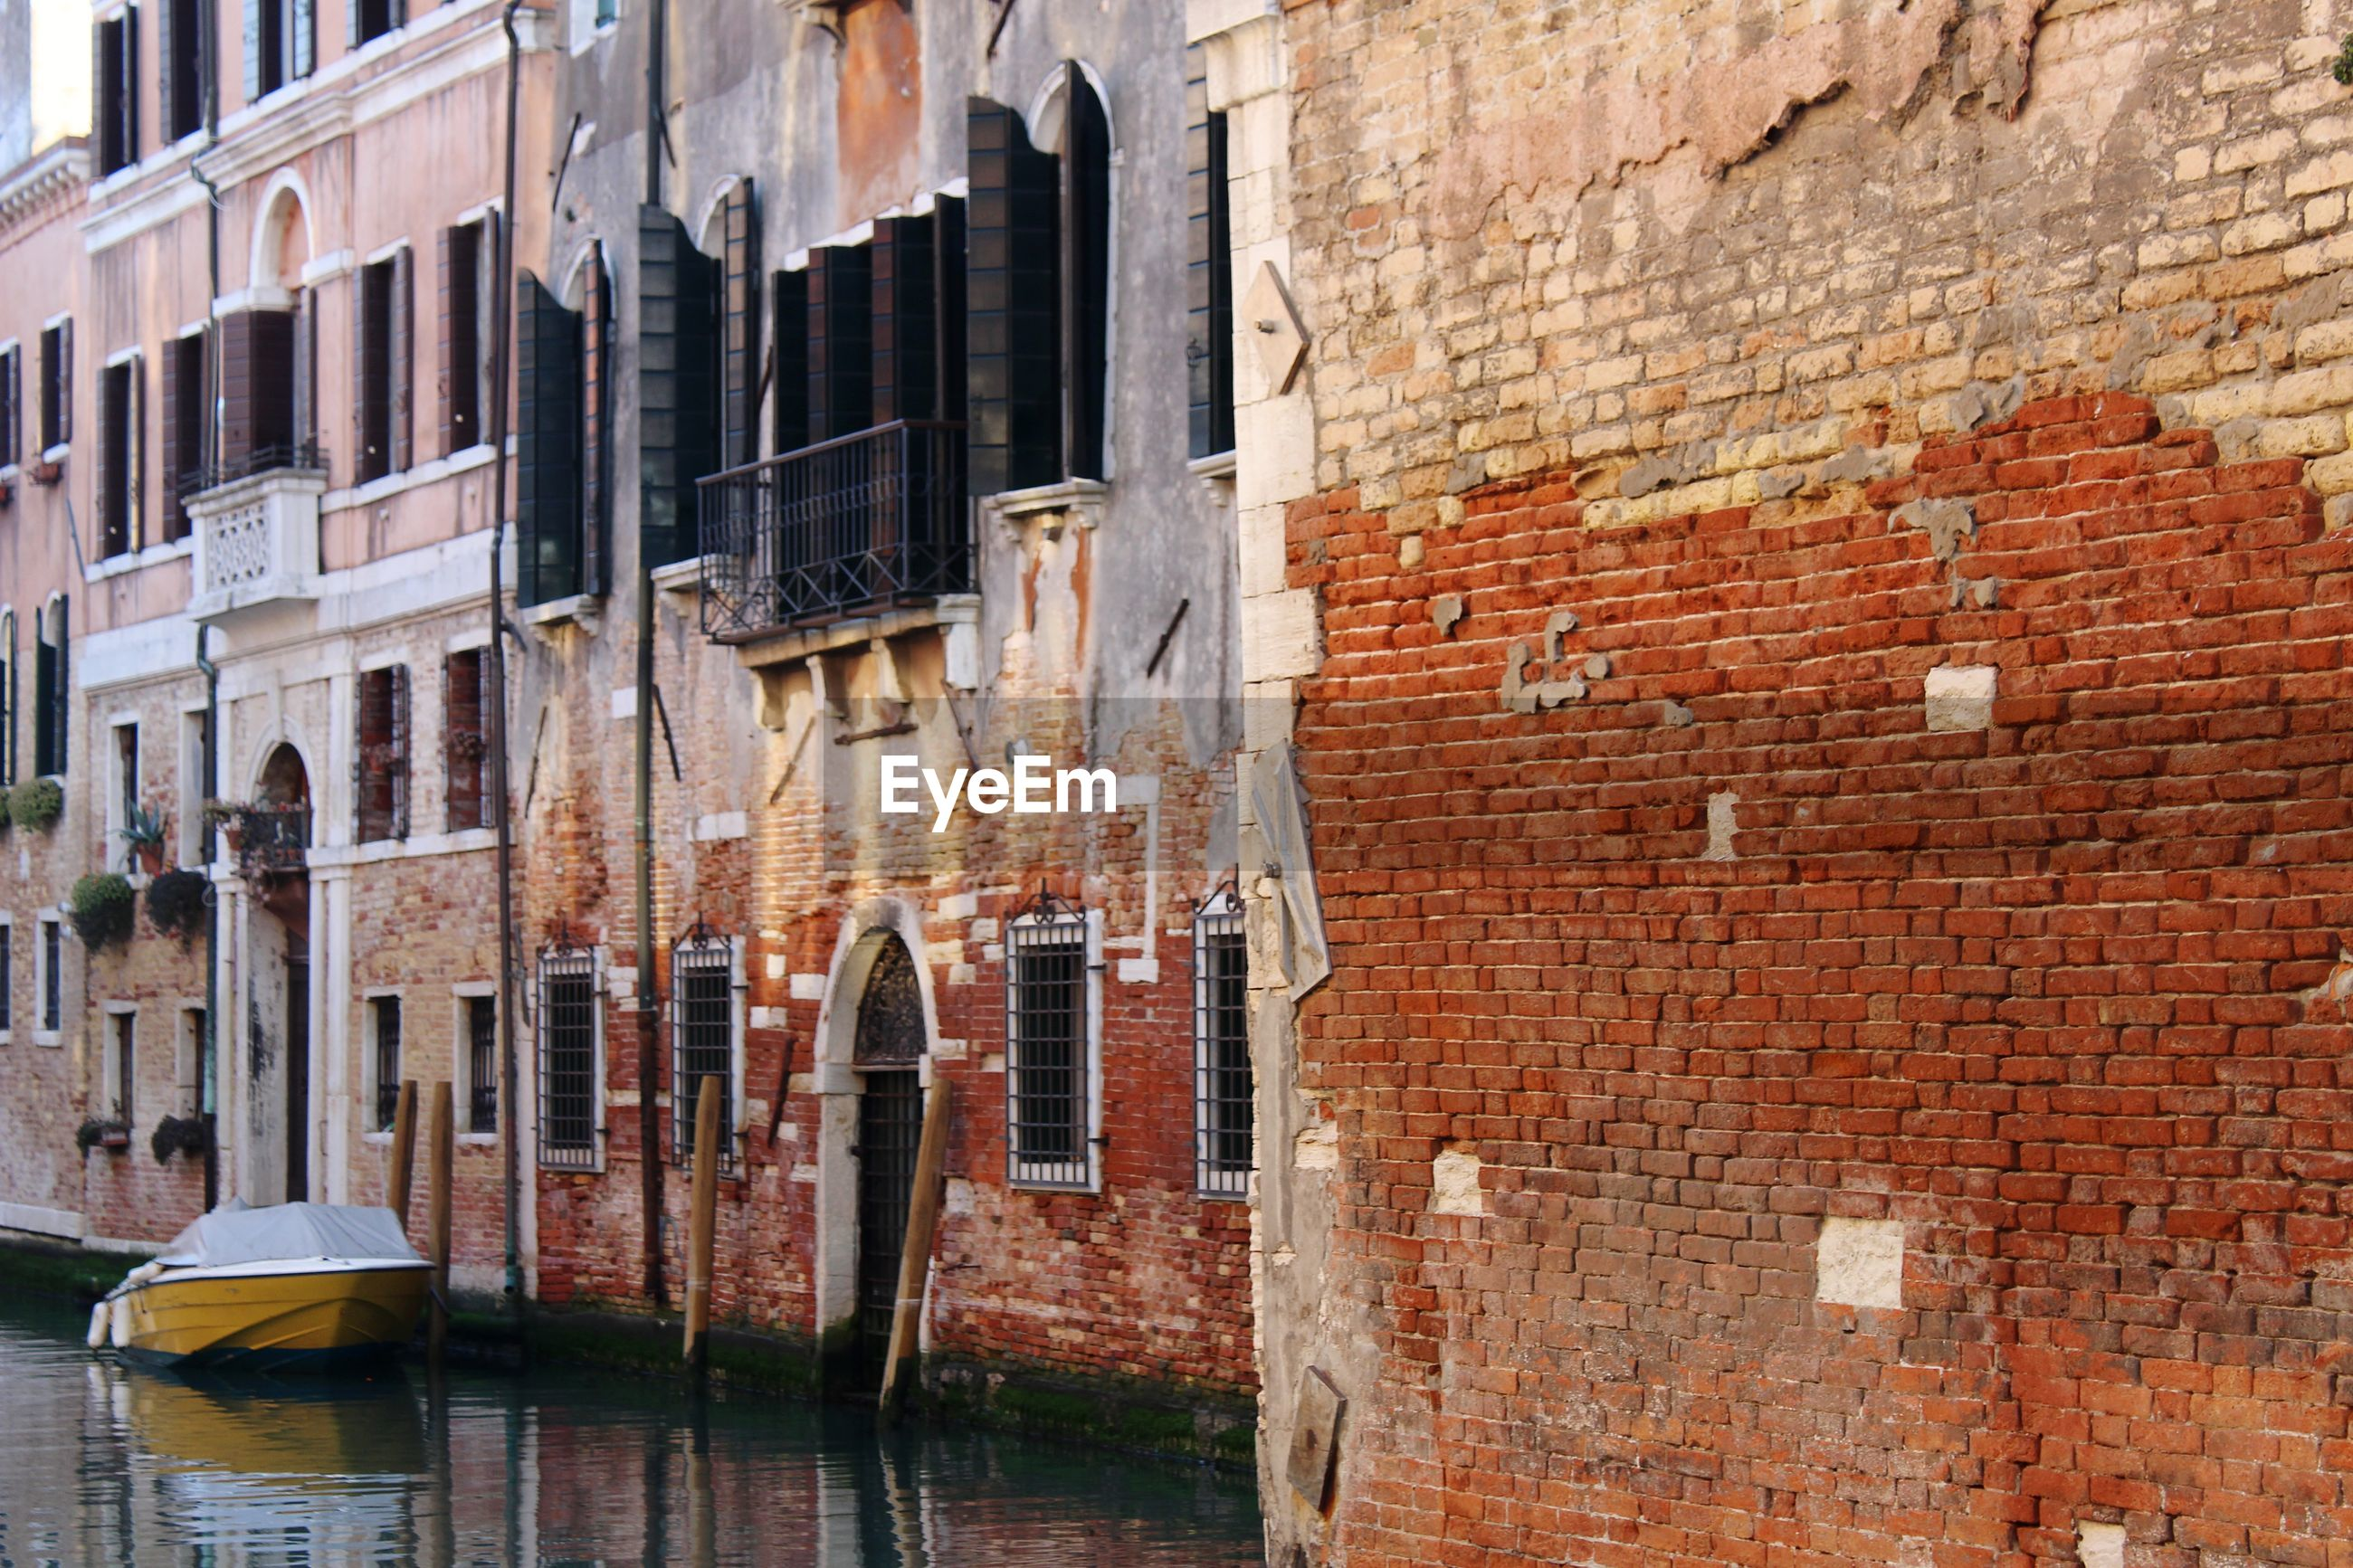 View of old building by canal in city